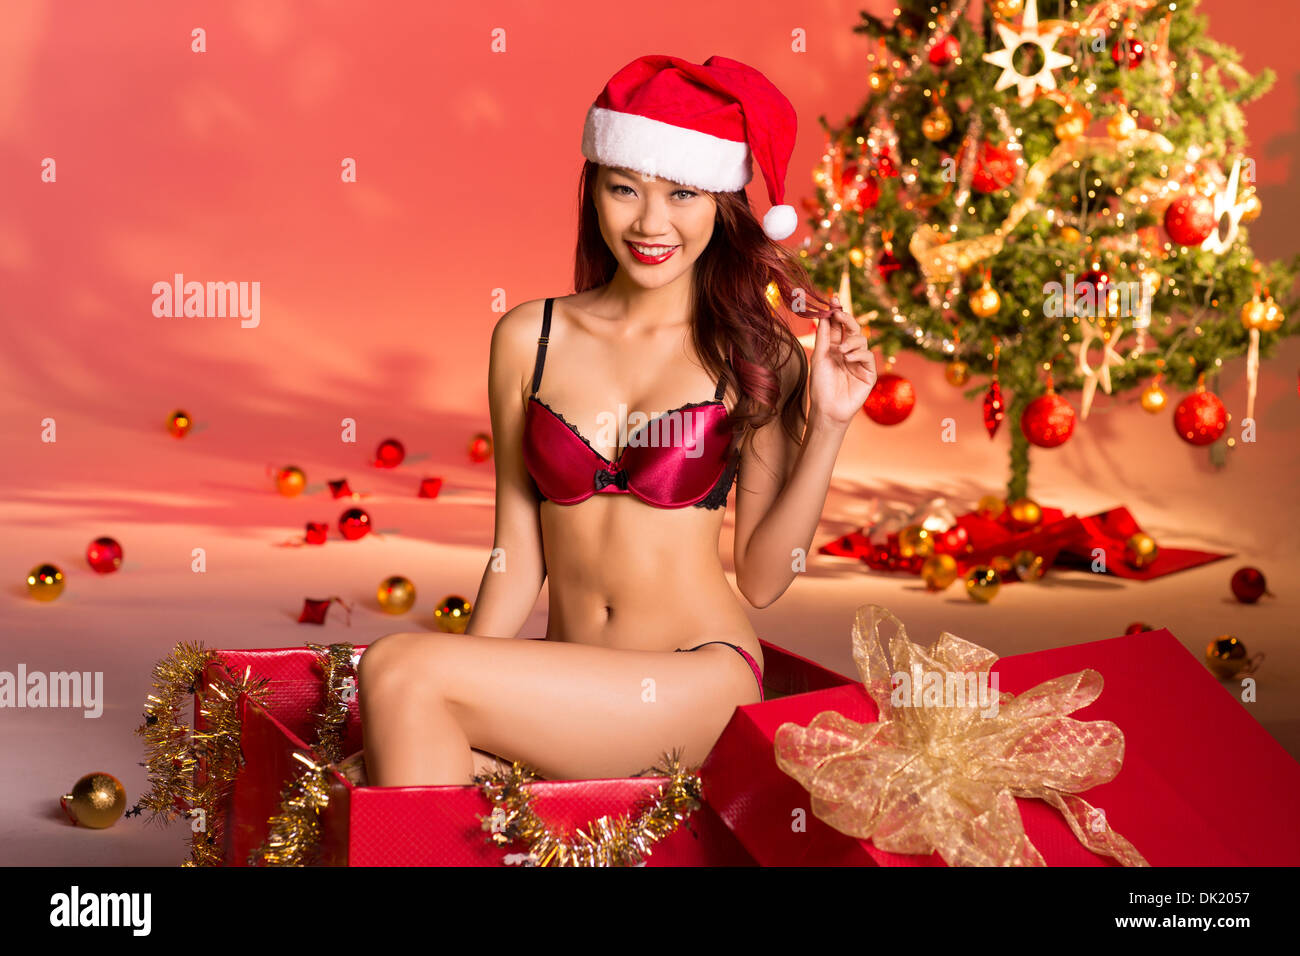 hot naked girls in holiday clothes